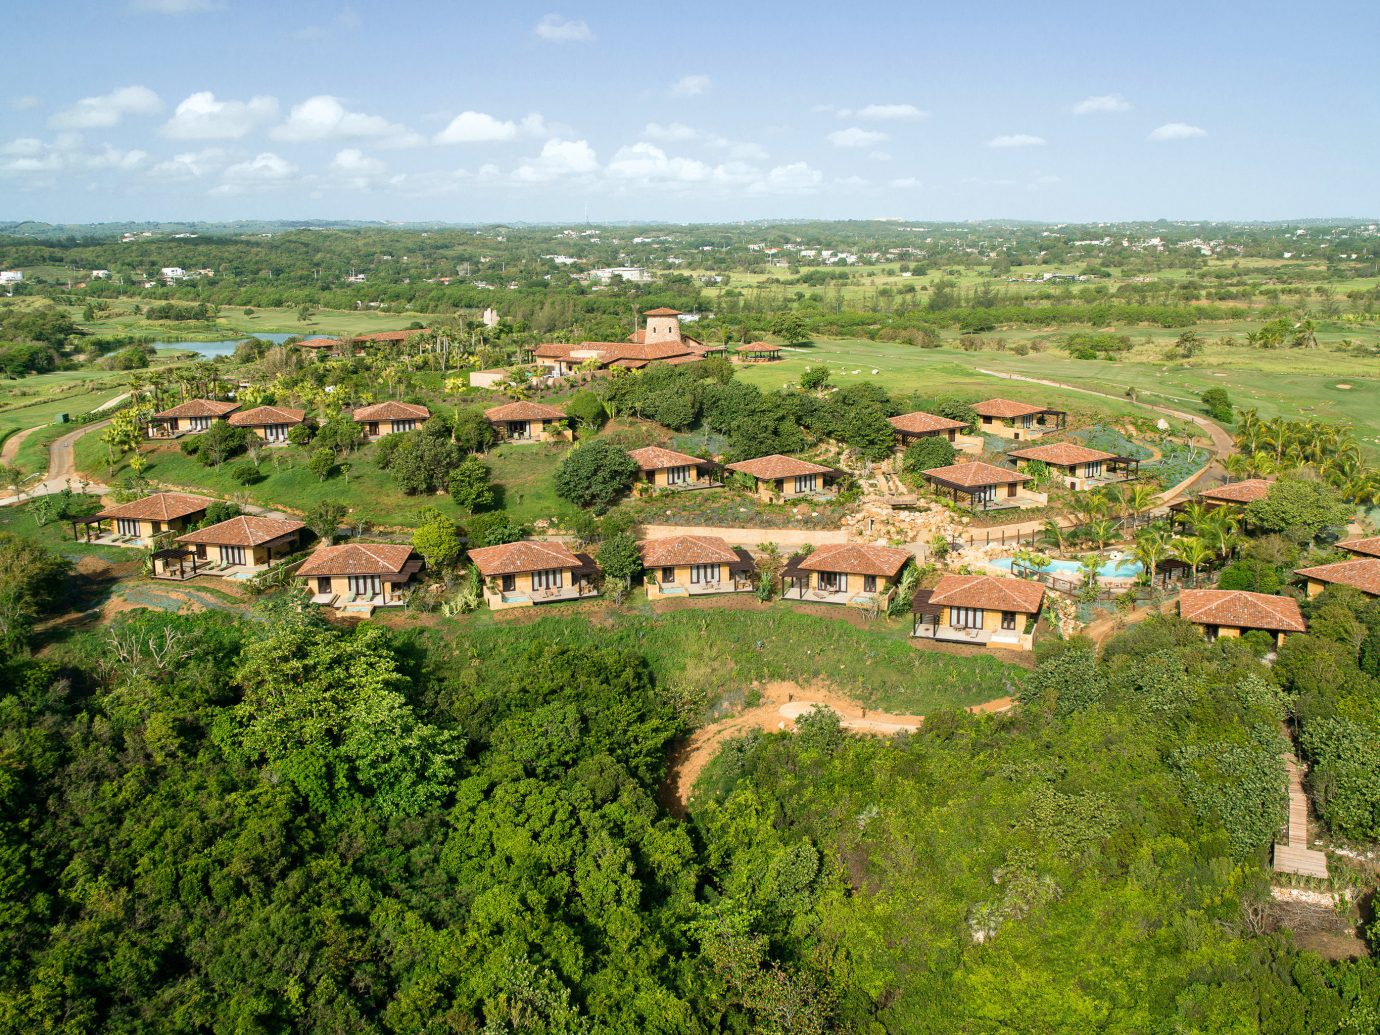 Hotels sky grass outdoor aerial photography geographical feature mountain Town tree ecosystem bird's eye view Nature hill plain human settlement Village residential area field rural area estate landscape plateau meadow terrain panorama overlooking lush Garden hillside day highland